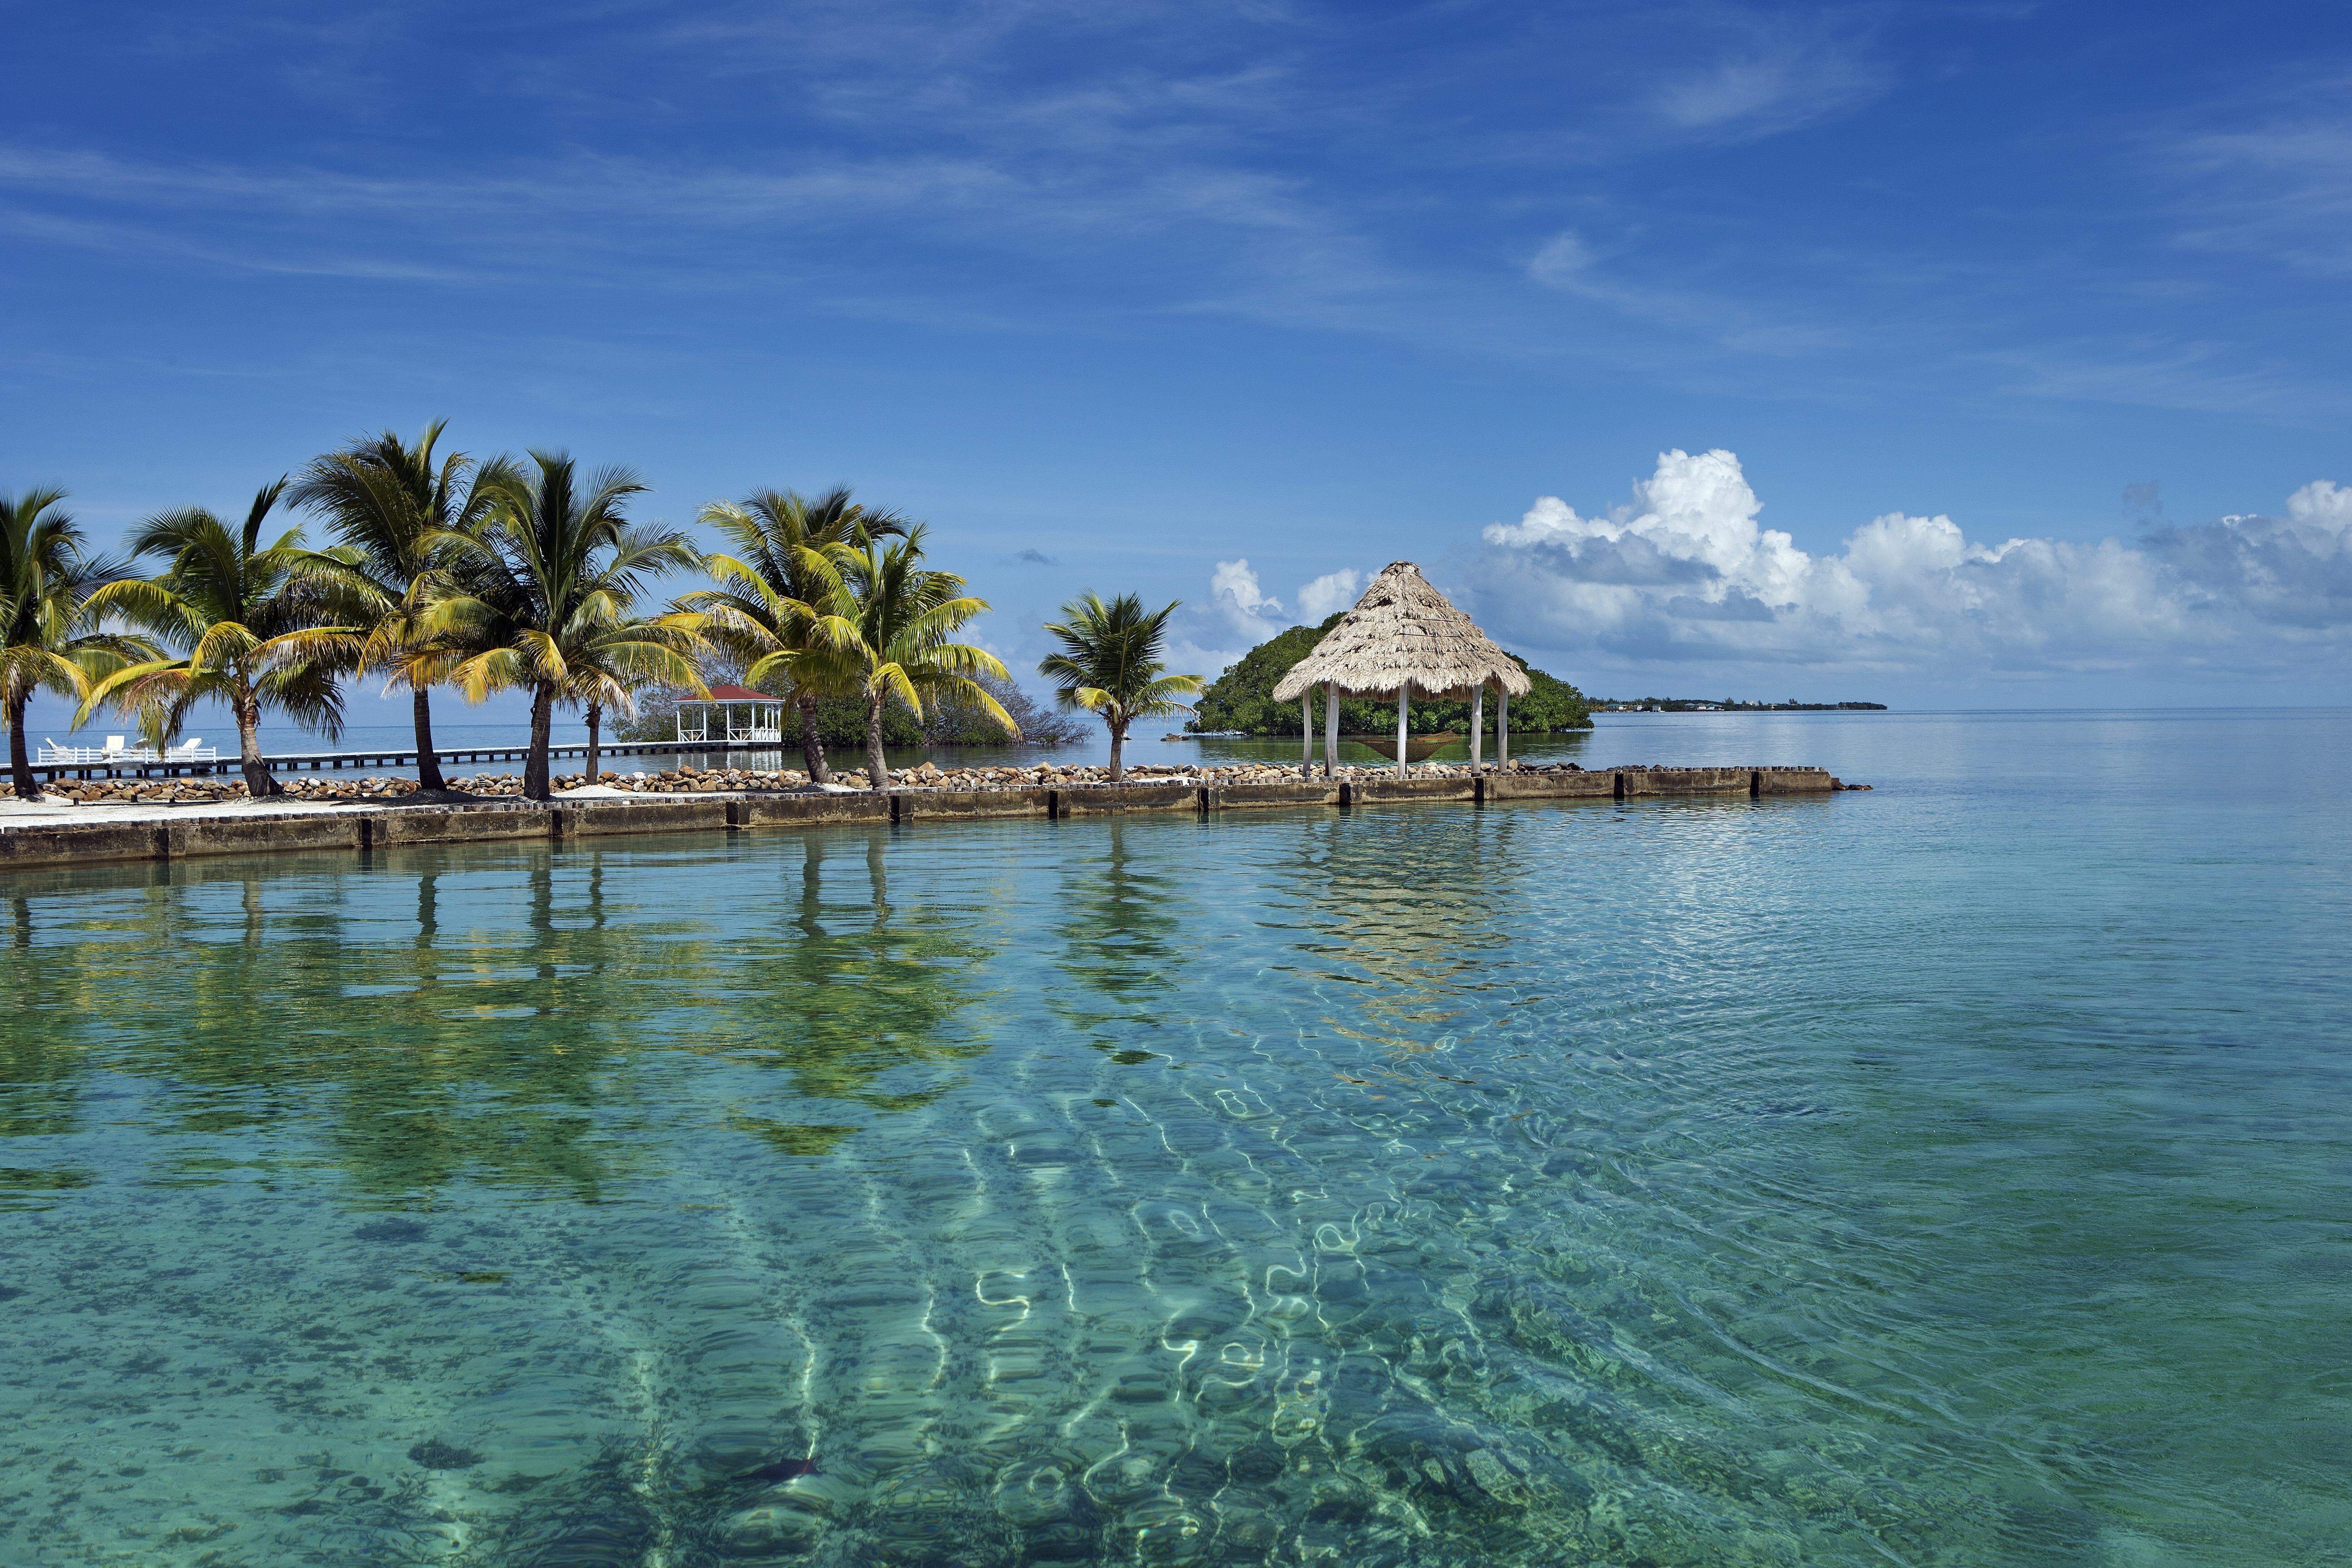 Private island caribbean wedding for couples with small guests lists